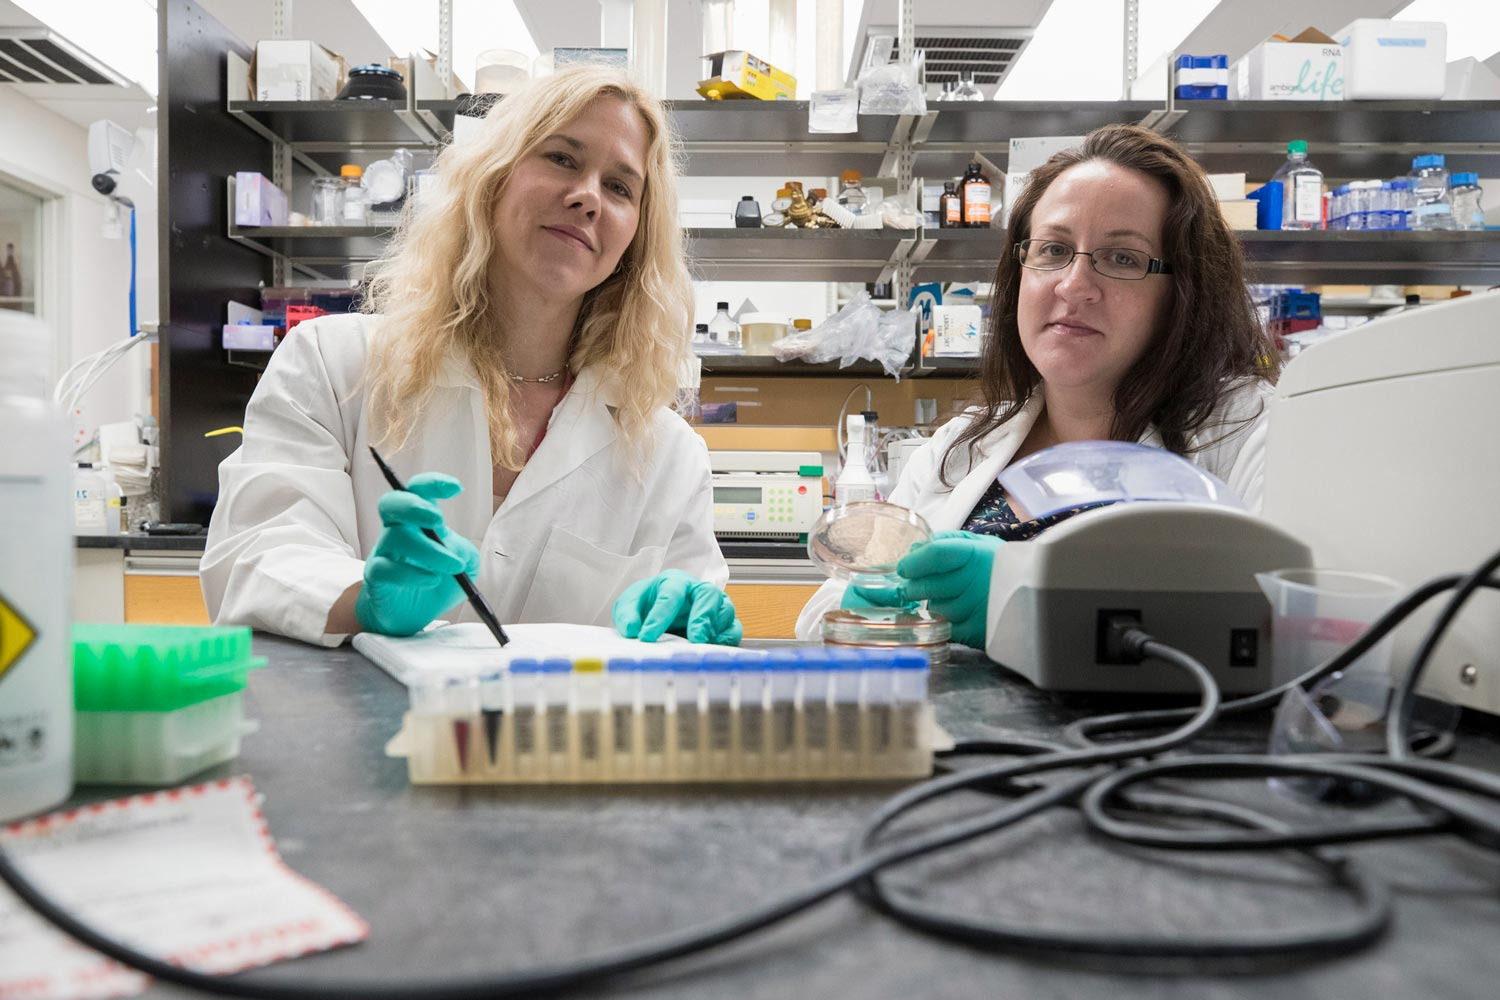 Researchers Melissa Kendall, left, and Beth Melson found that E. coli bacteria use oxygen levels to sense where they are in the digestive system – and attach themselves where they can do the most harm.